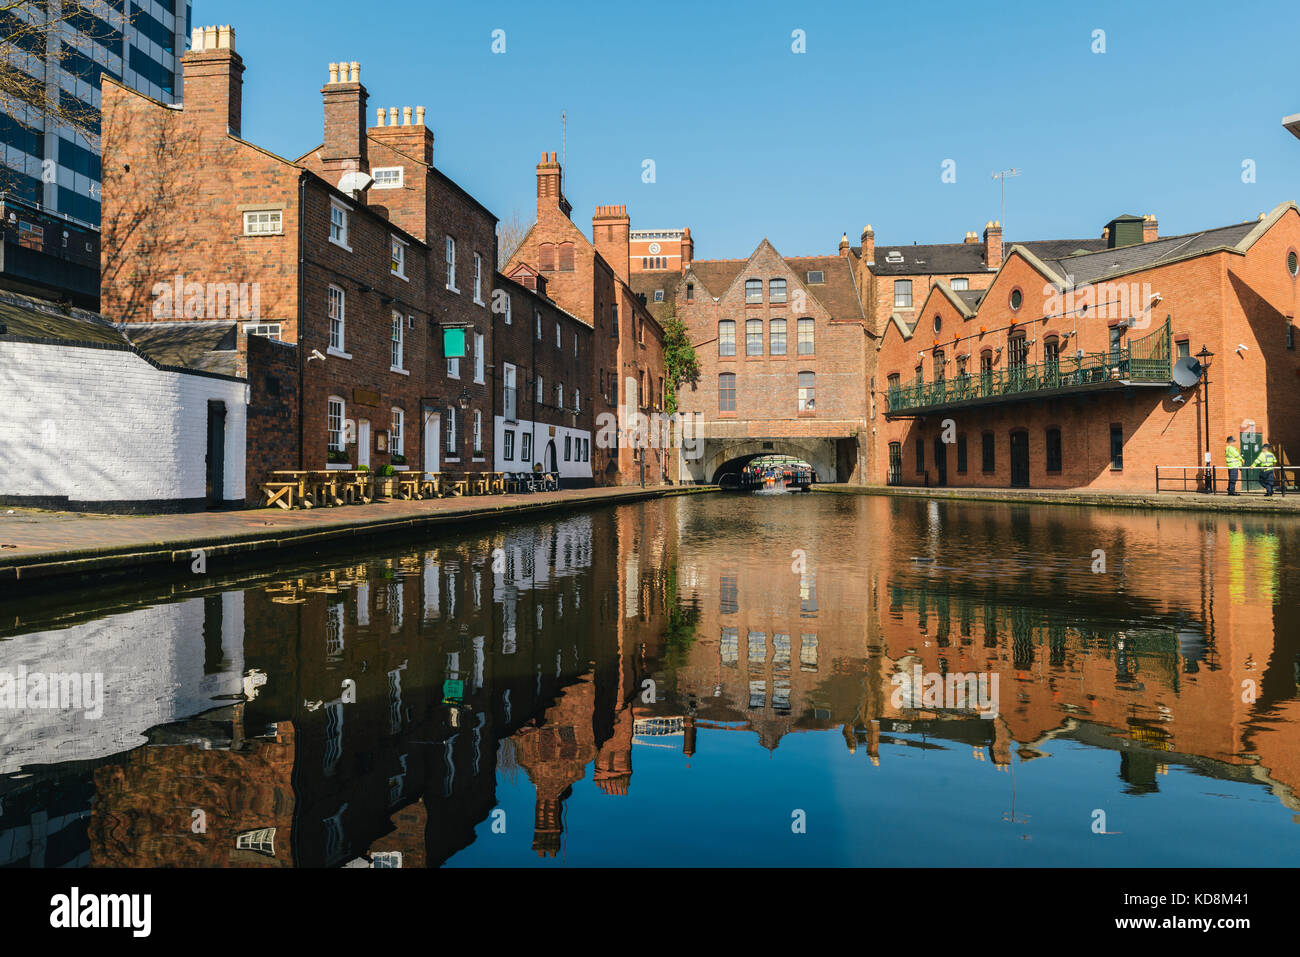 Morning reflections on Gas Street Basin, at the heart of Birmingham's canal network - Stock Image